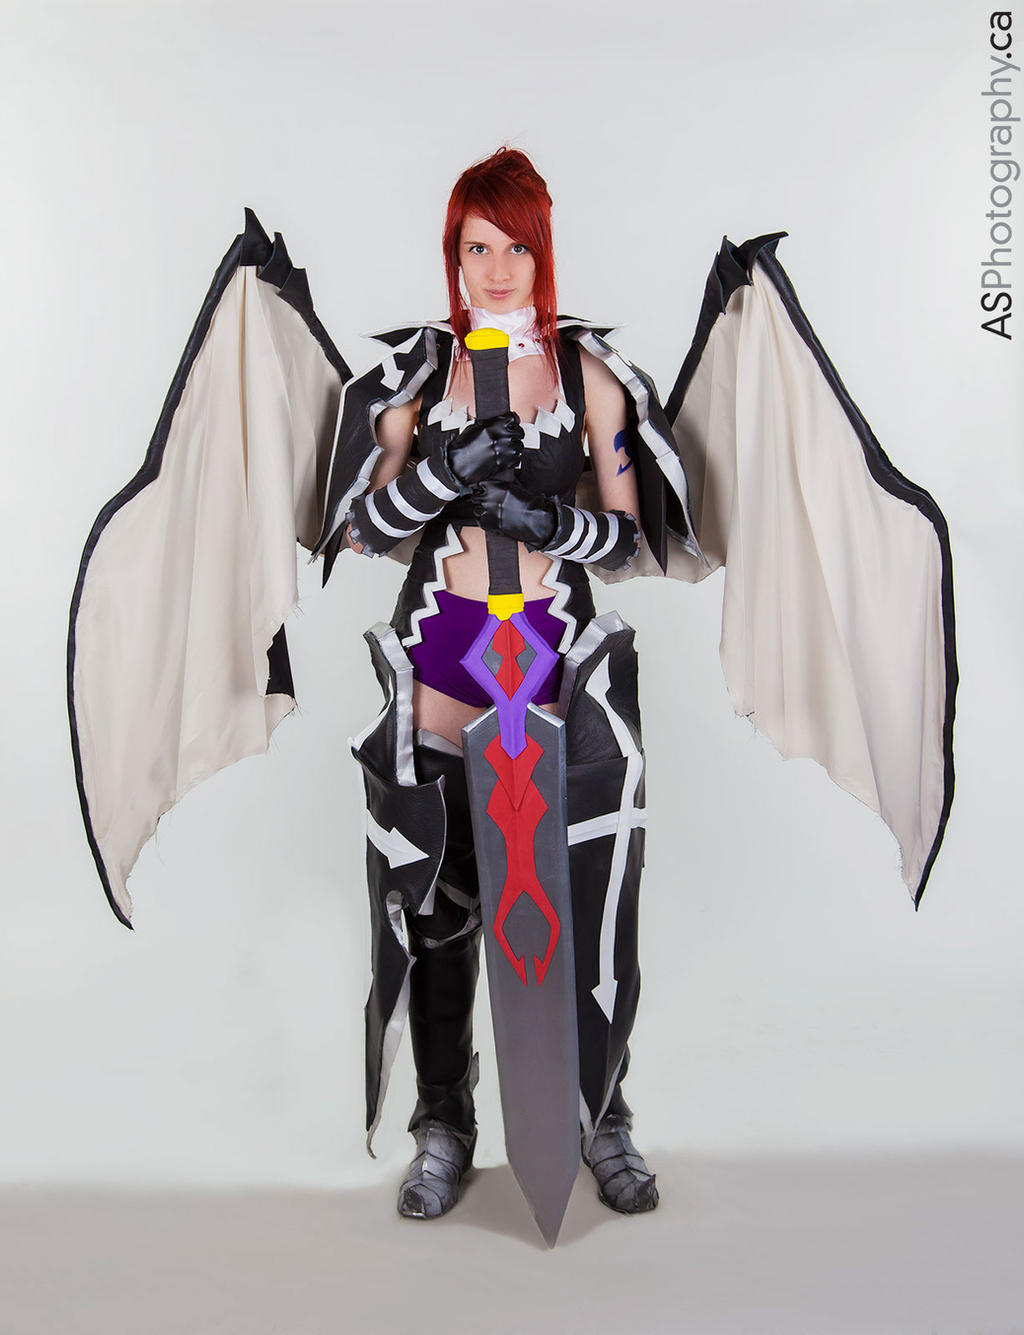 Fairy Tail  Erza Scarlet Black Wing Armor Cosplay by vikkiievoltageErza Scarlet Black Wing Armor Cosplay